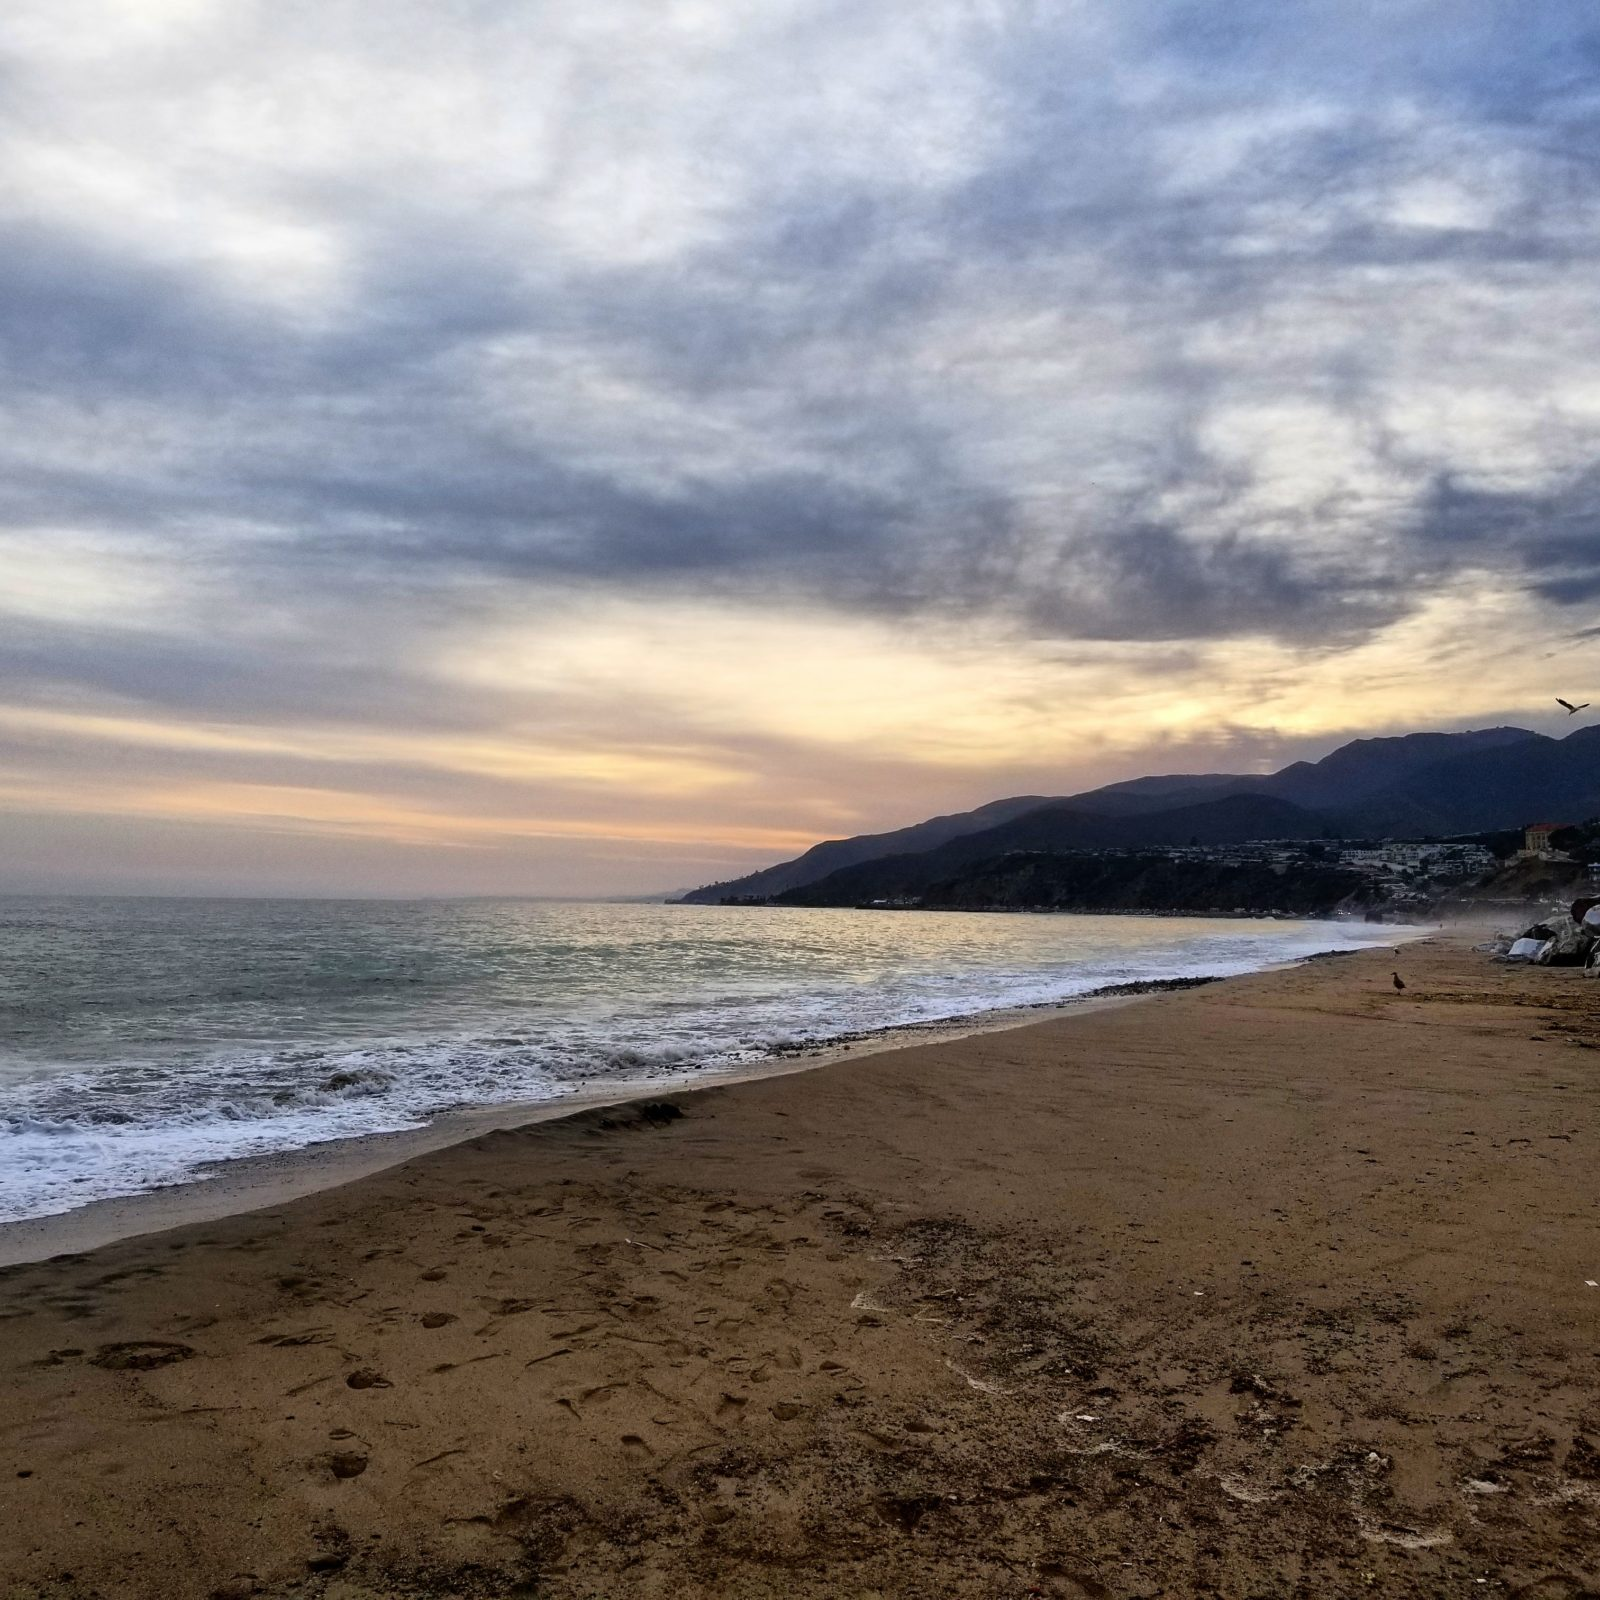 Malibu at Sunset